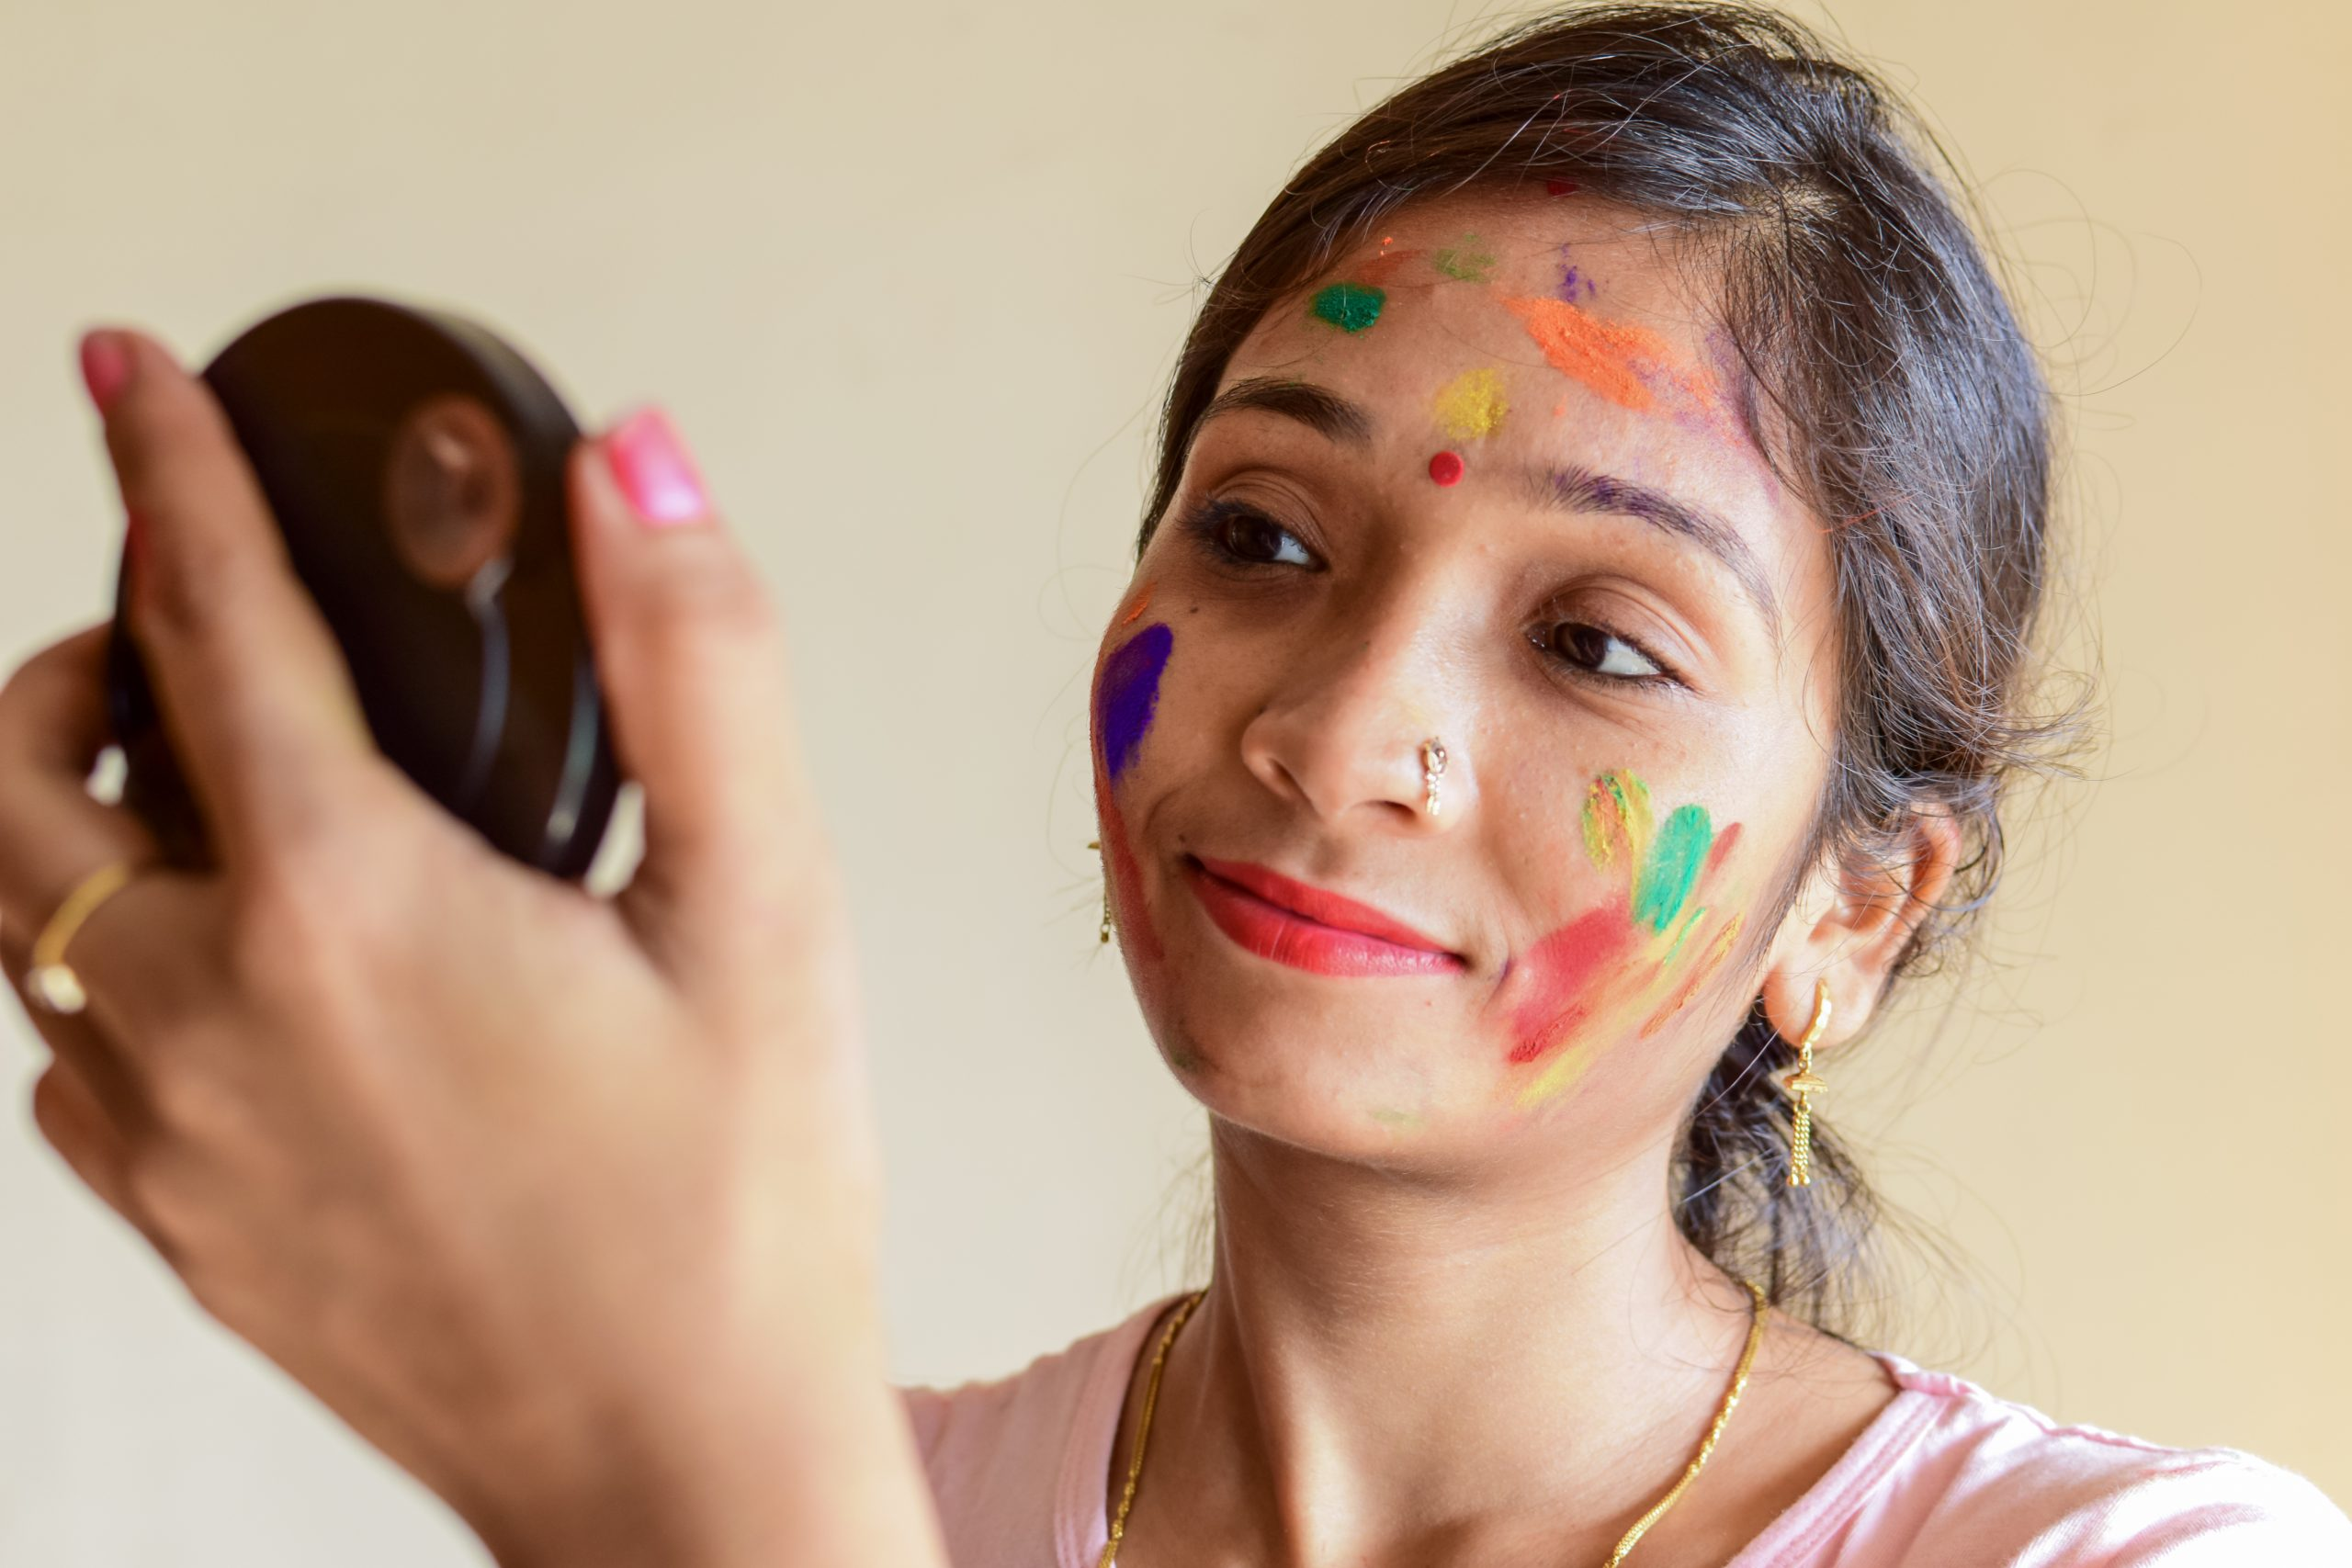 A girl seeing her colorful face in a mirror